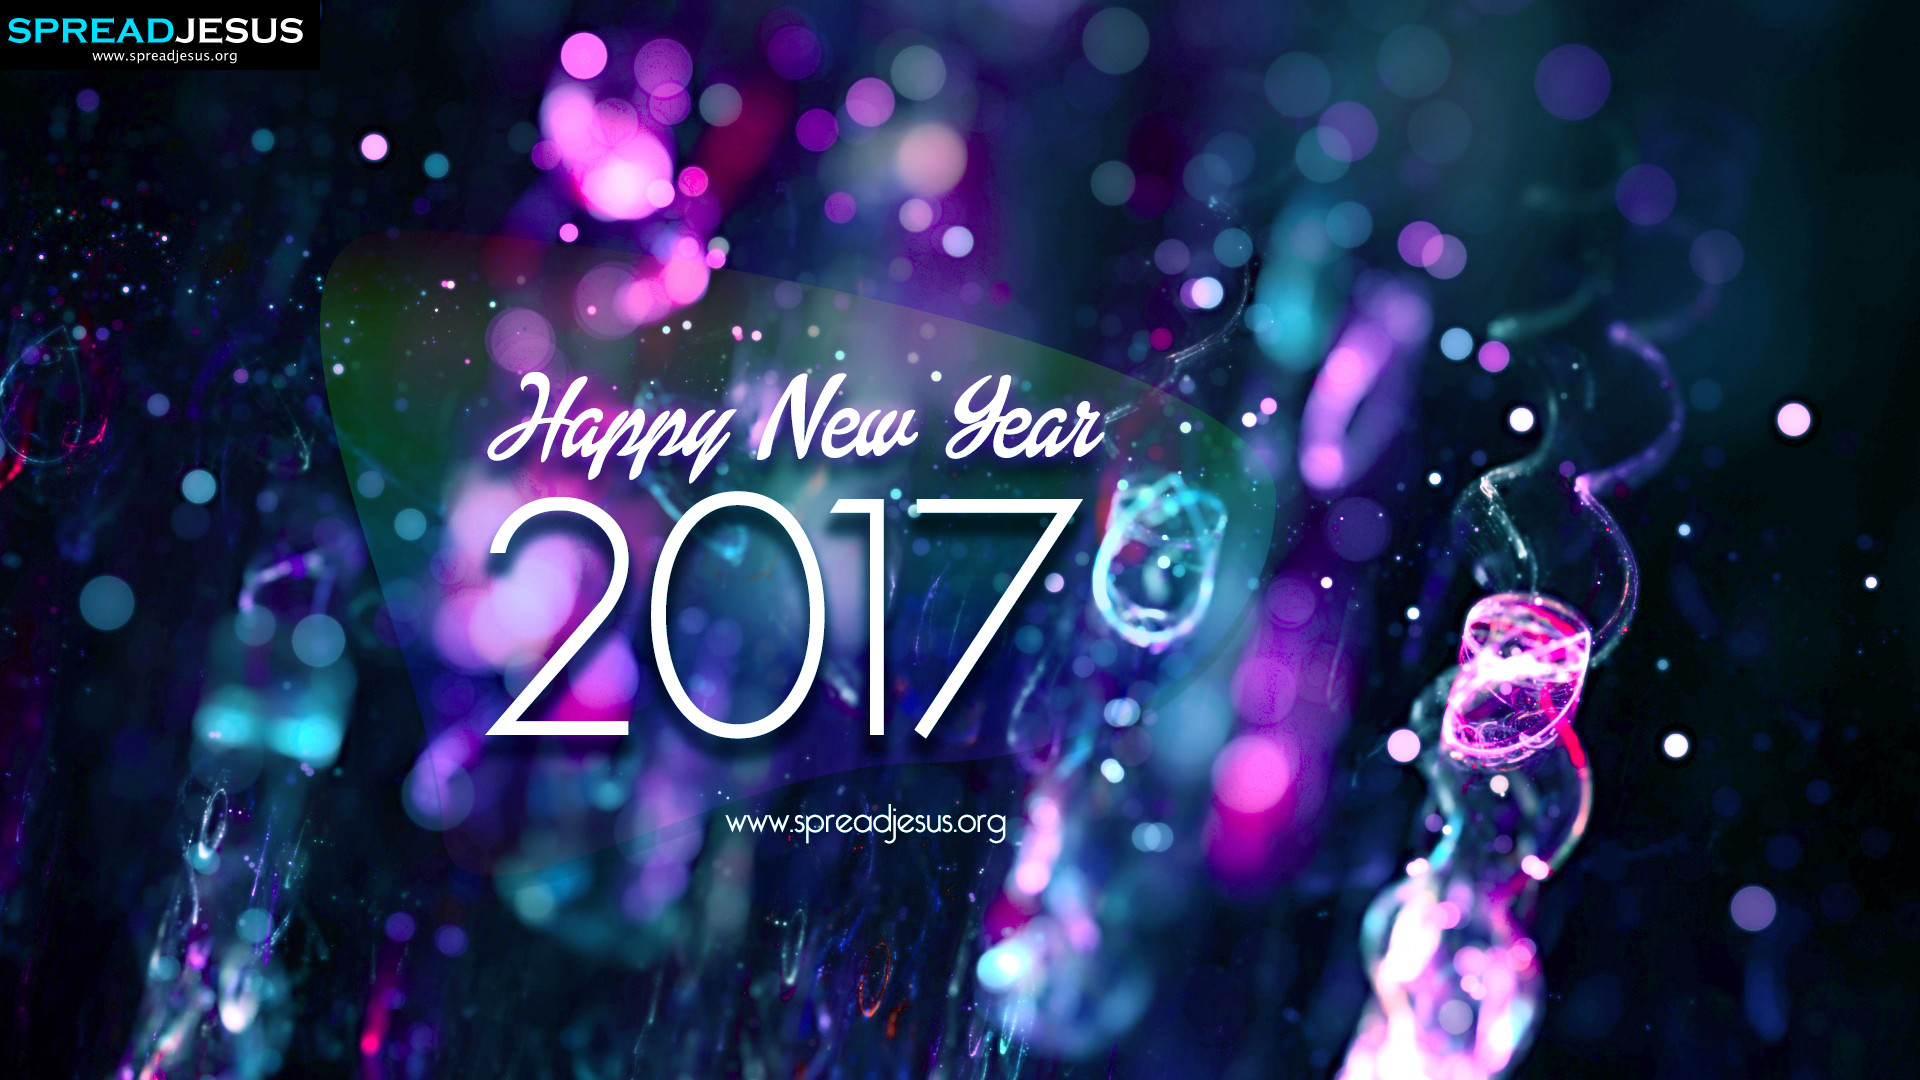 Happy New Year 2017 Greetings Wishes HD-Wallpapers Free  DownlOADING-spreadjesus.org